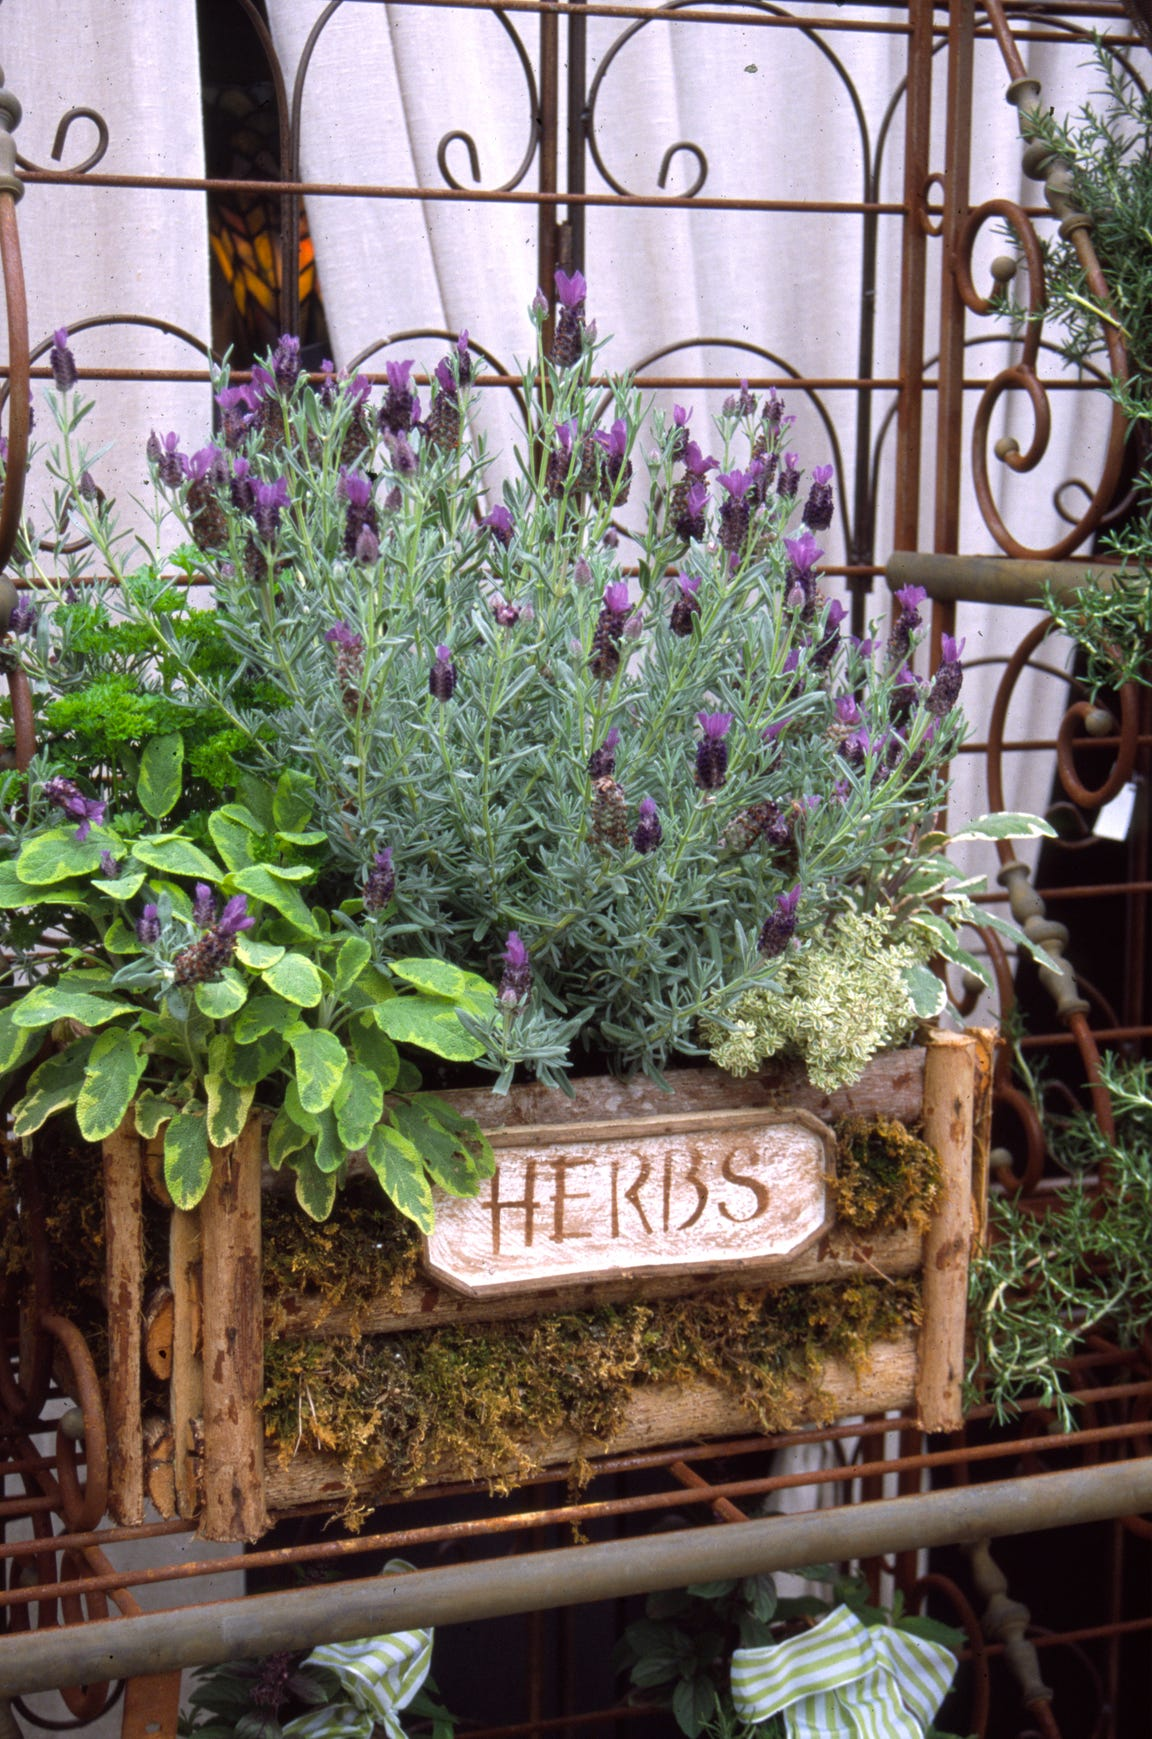 Growing herbs in pots lets you move them to the perfect location for the season.